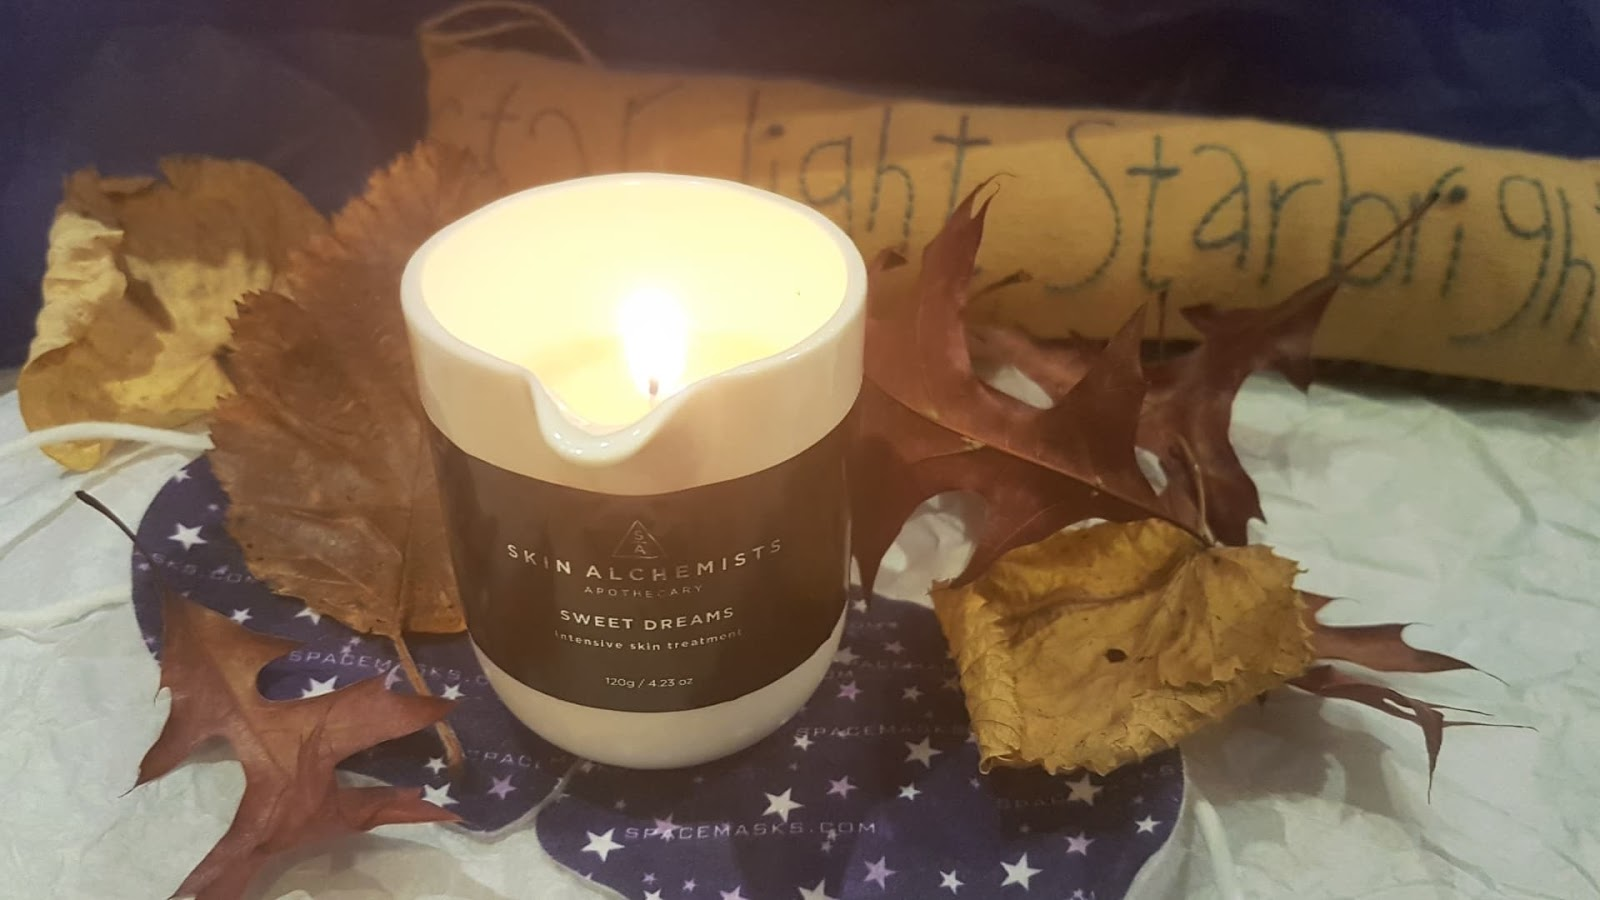 Skin Alchemists Intensive Skin Treatment candle review - The Natural Beauty Box